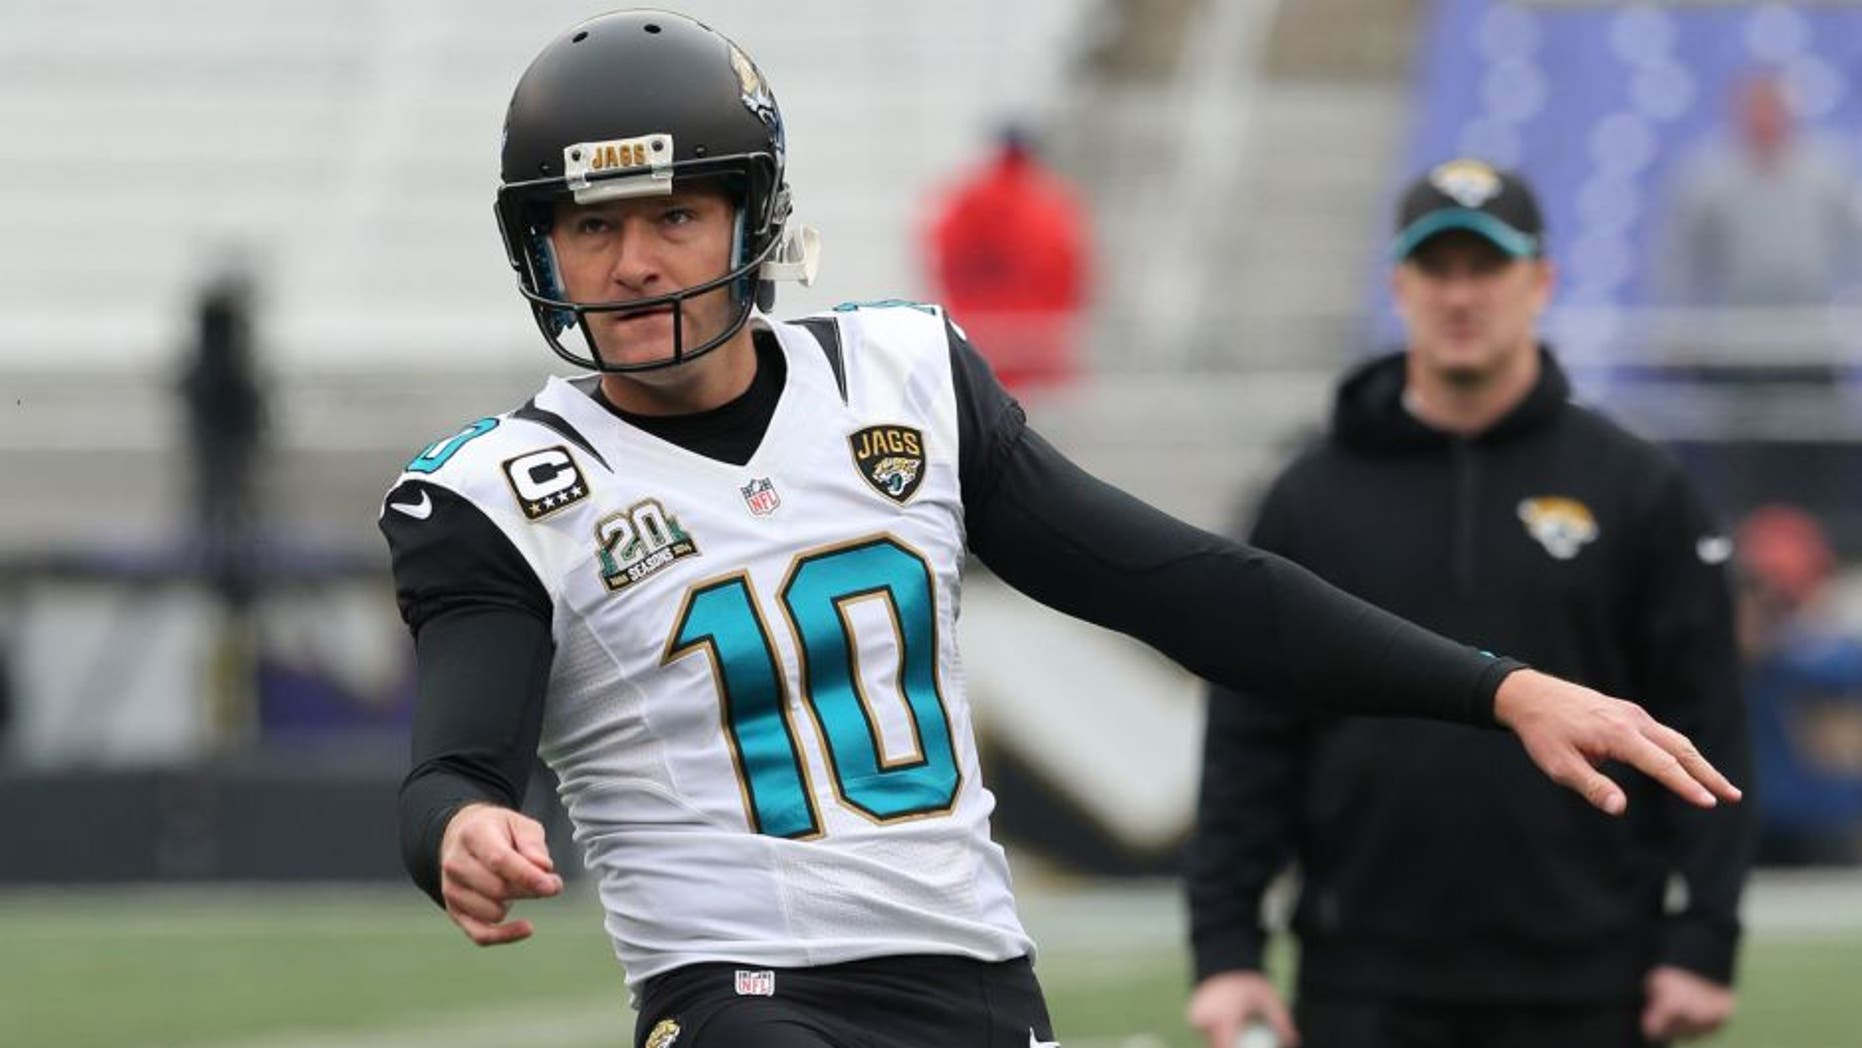 Dec 14, 2014; Baltimore, MD, USA; Jacksonville Jaguars kicker Josh Scobee (10) warms up prior to the game against the Baltimore Ravens at M&T Bank Stadium. Mandatory Credit: Mitch Stringer-USA TODAY Sports